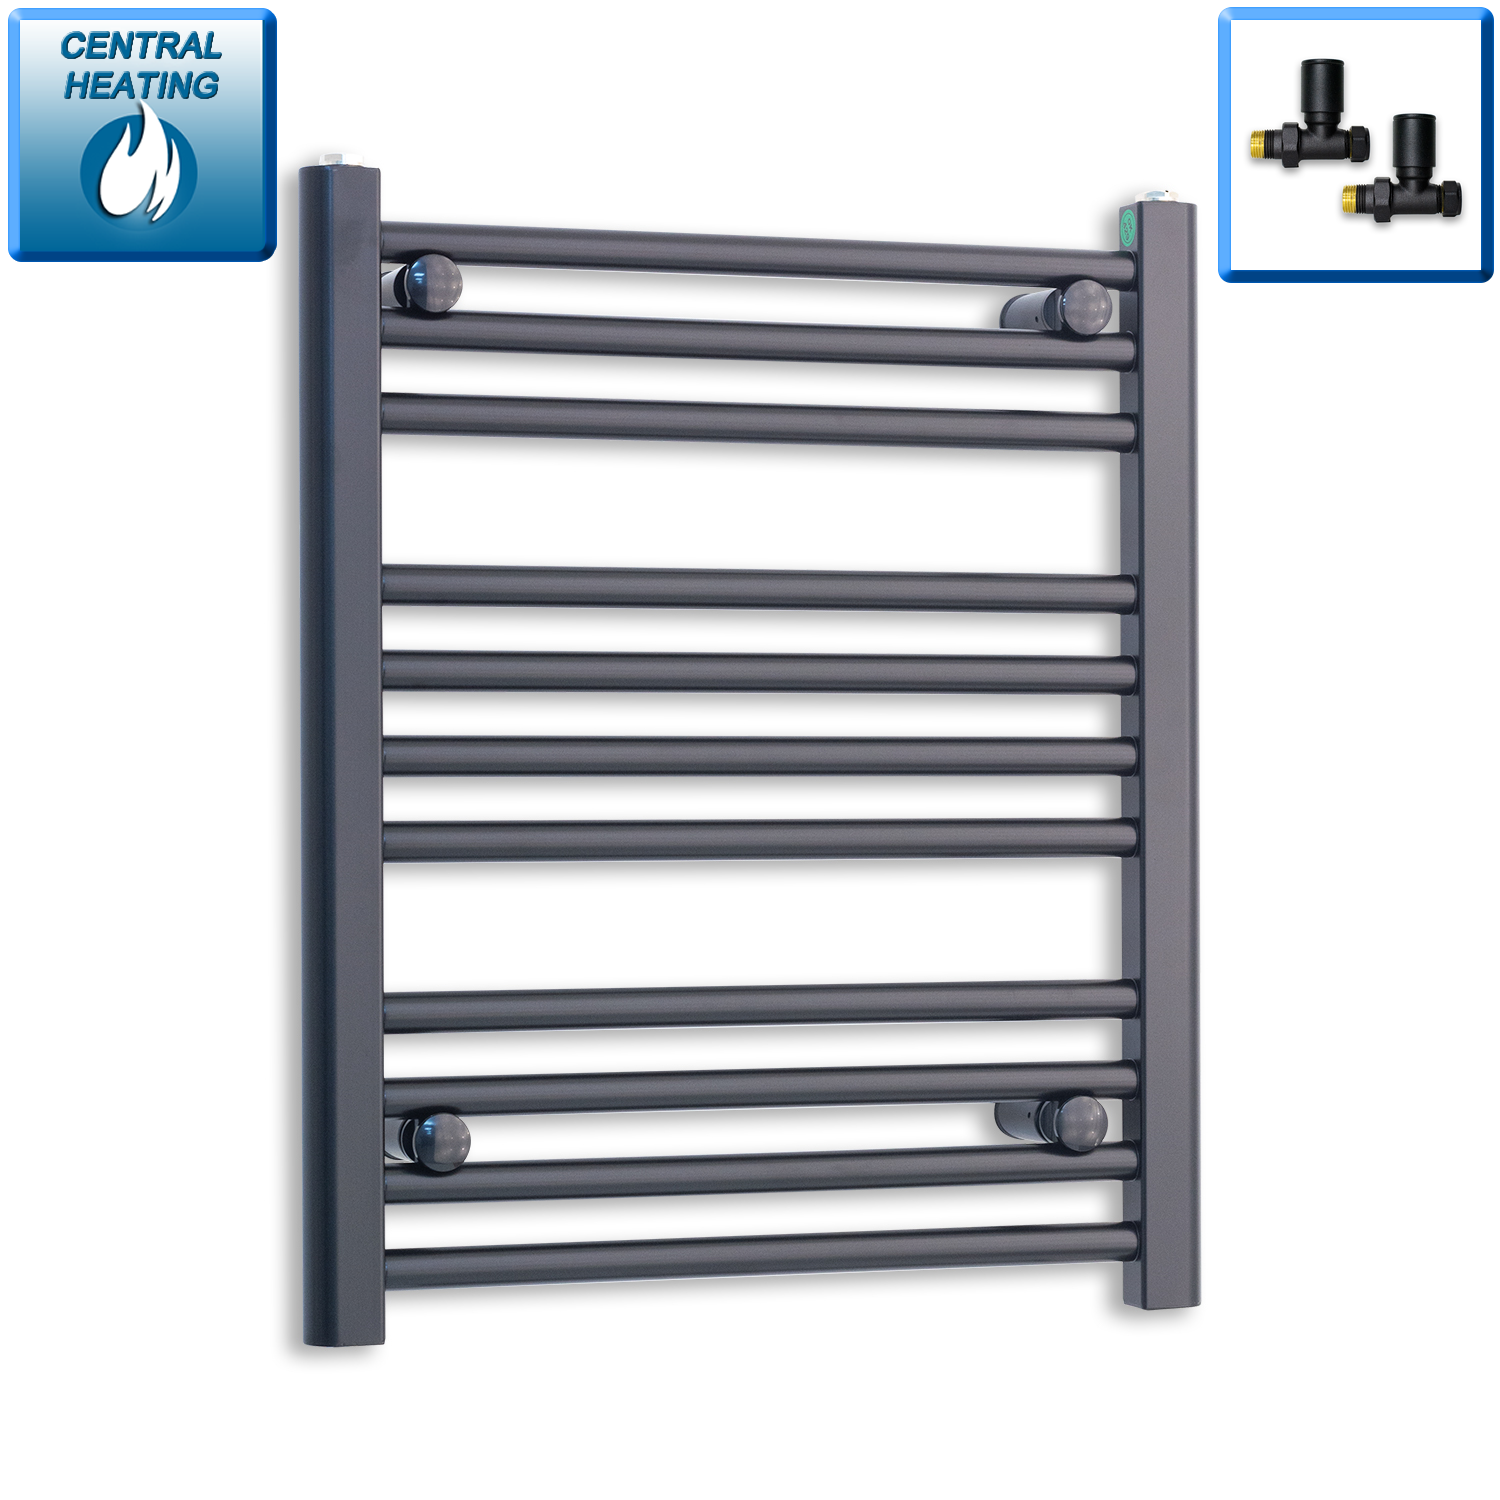 500mm Wide 600mm High Flat Black Heated Towel Rail Radiator HTR,With Straight Valve